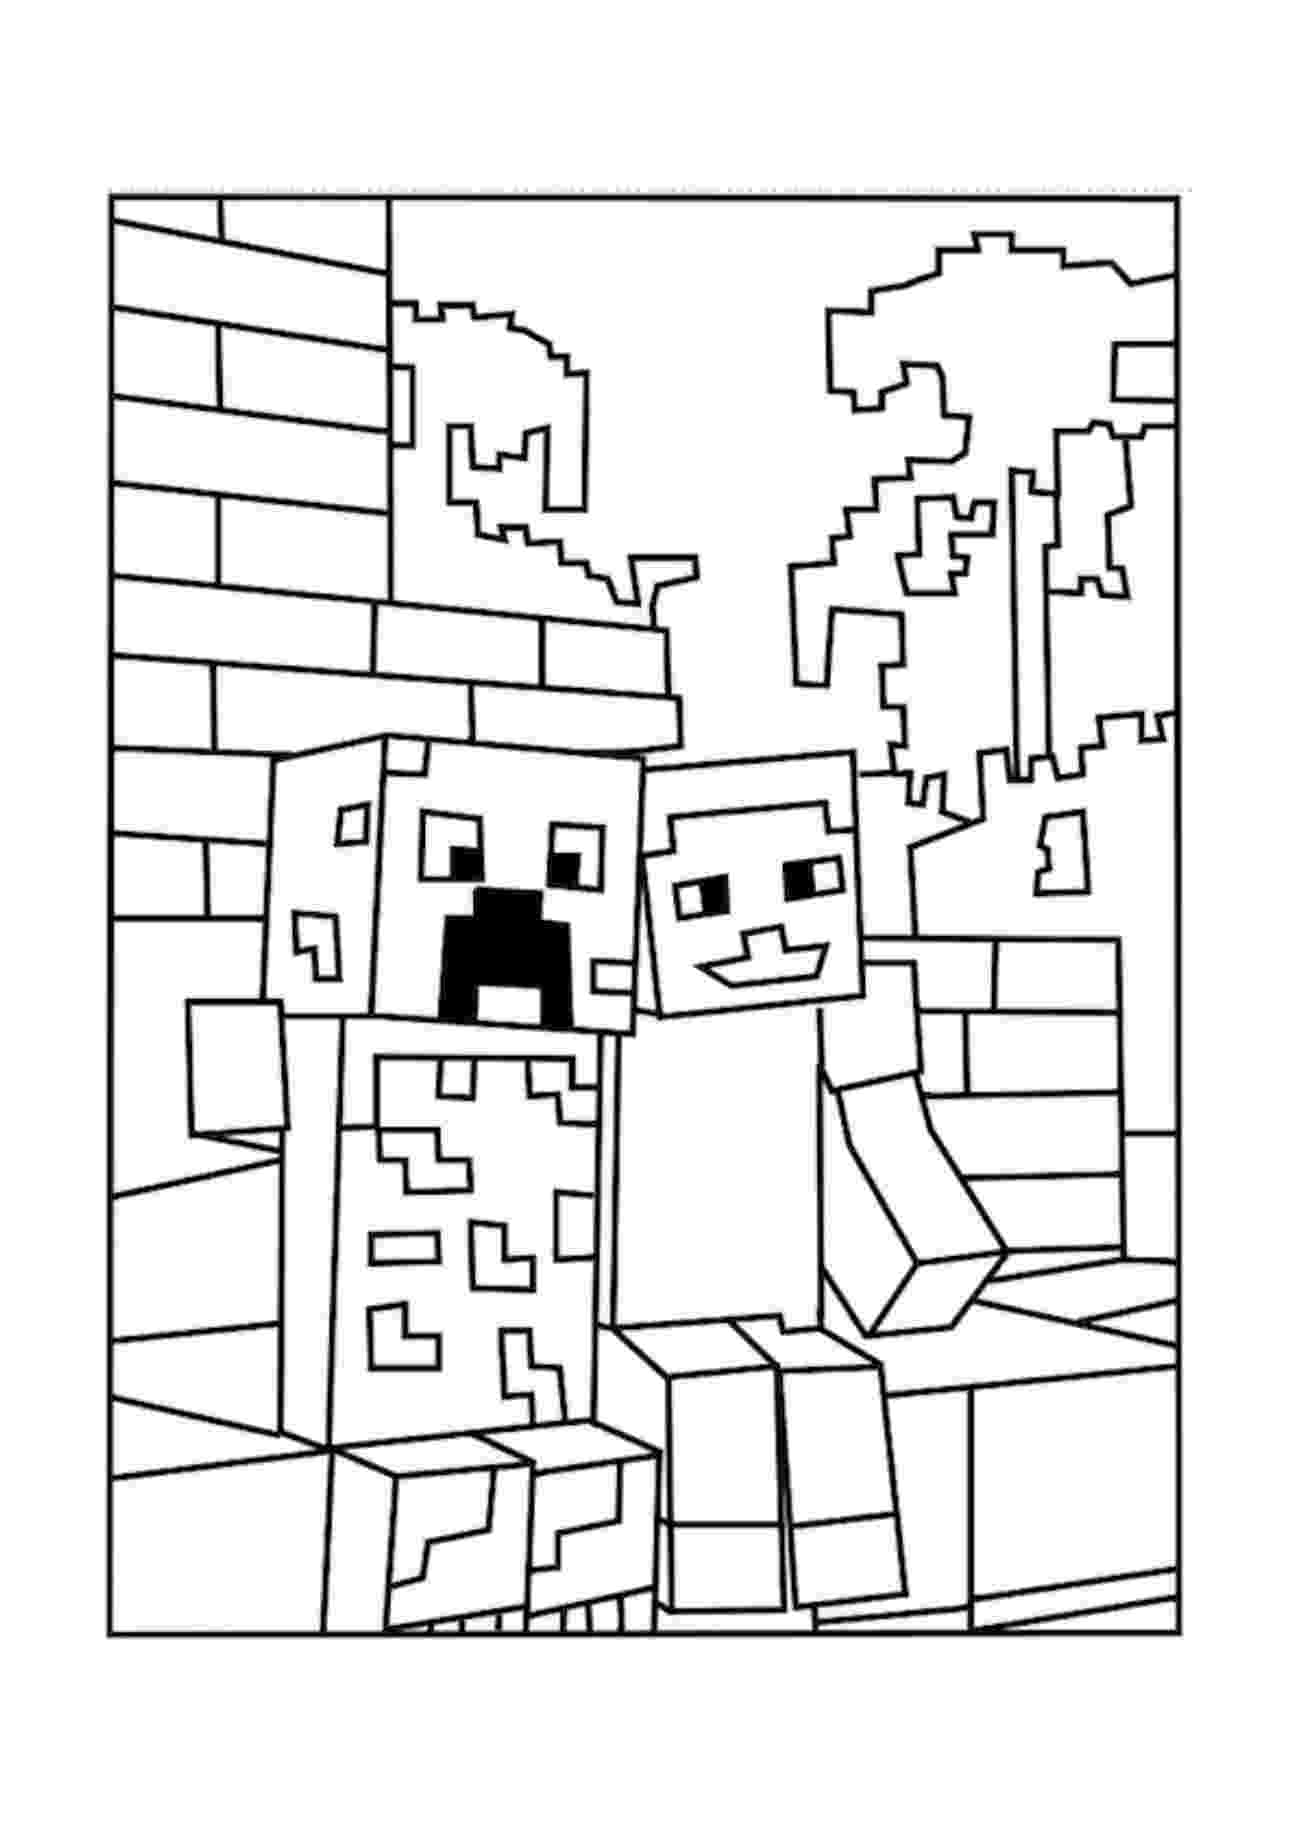 minecraft creeper pictures to color minecraft steve coloring pages getcoloringpagescom to minecraft creeper pictures color